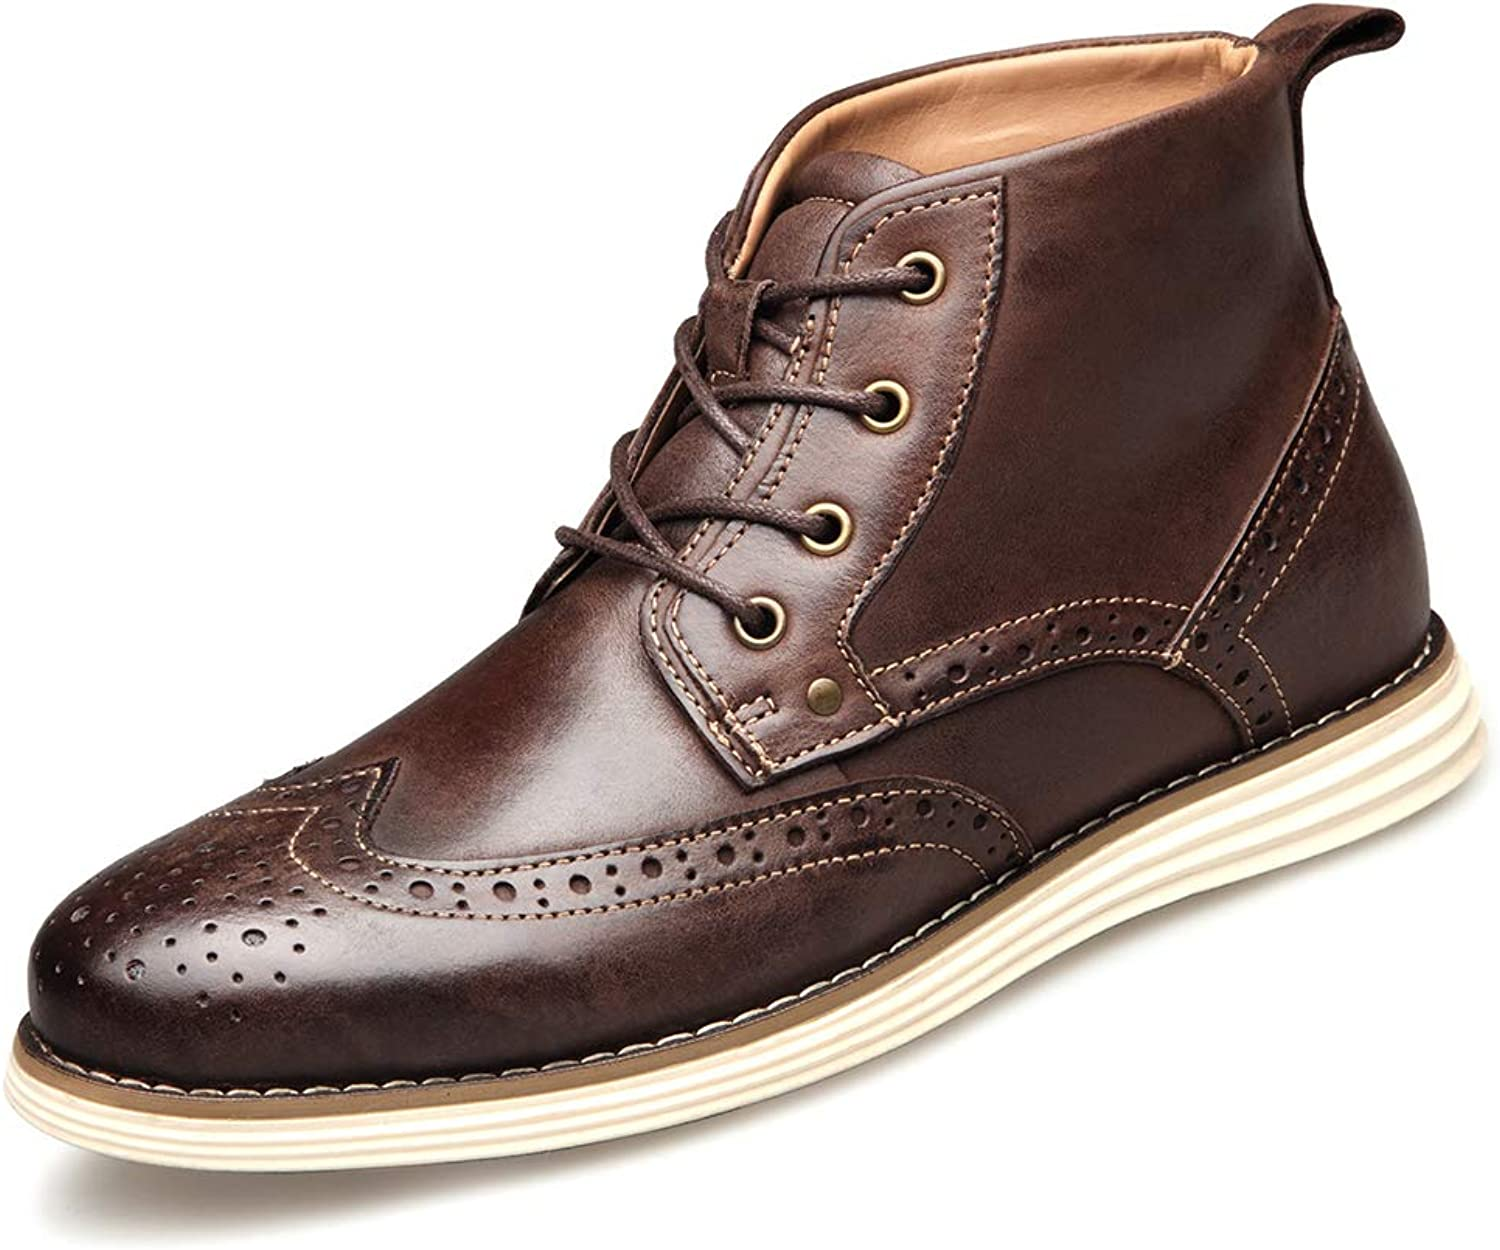 Men's Leather Cap Toe Lace Up Winter Casual Dress Boot Classic Comfortable Dress shoes for Men